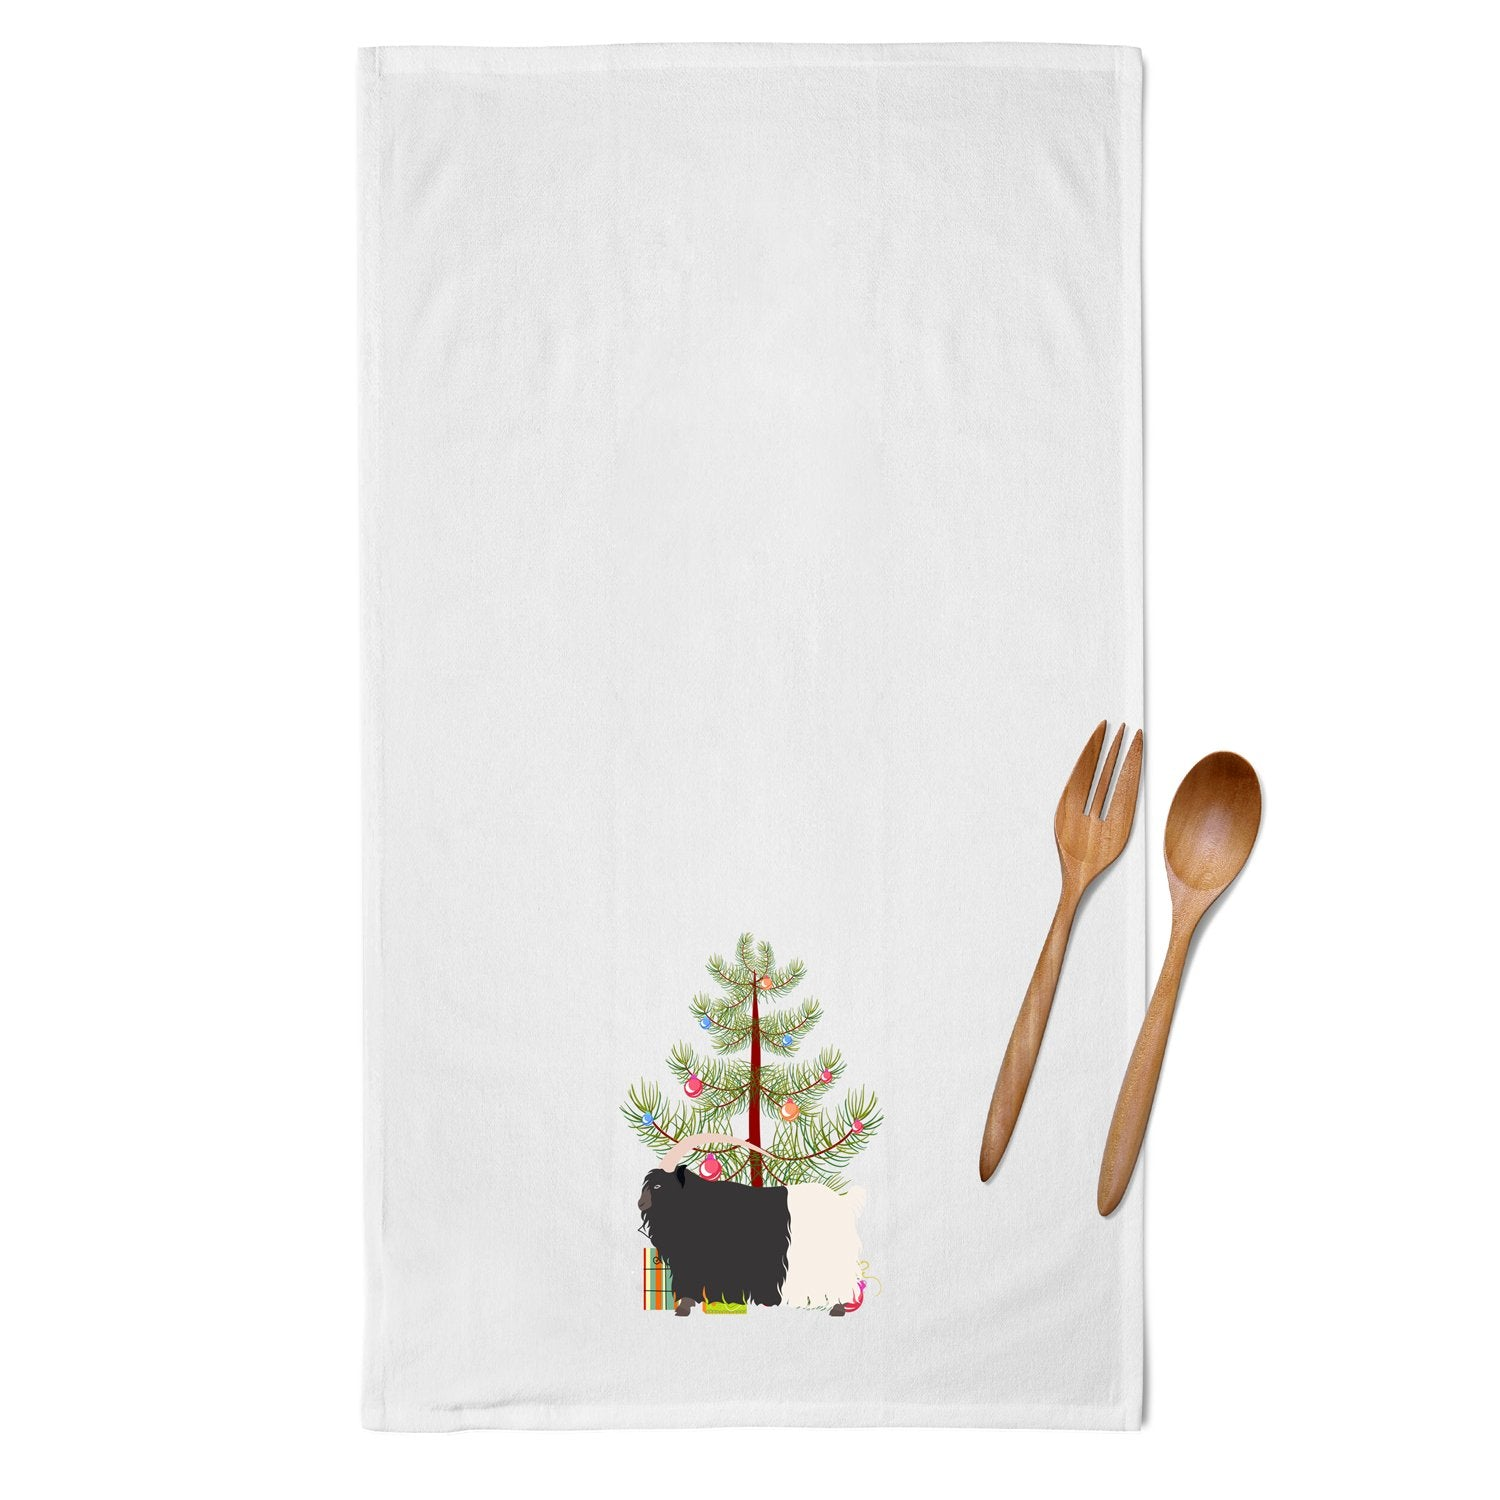 Welsh Black-Necked Goat Christmas White Kitchen Towel Set of 2 BB9254WTKT by Caroline's Treasures